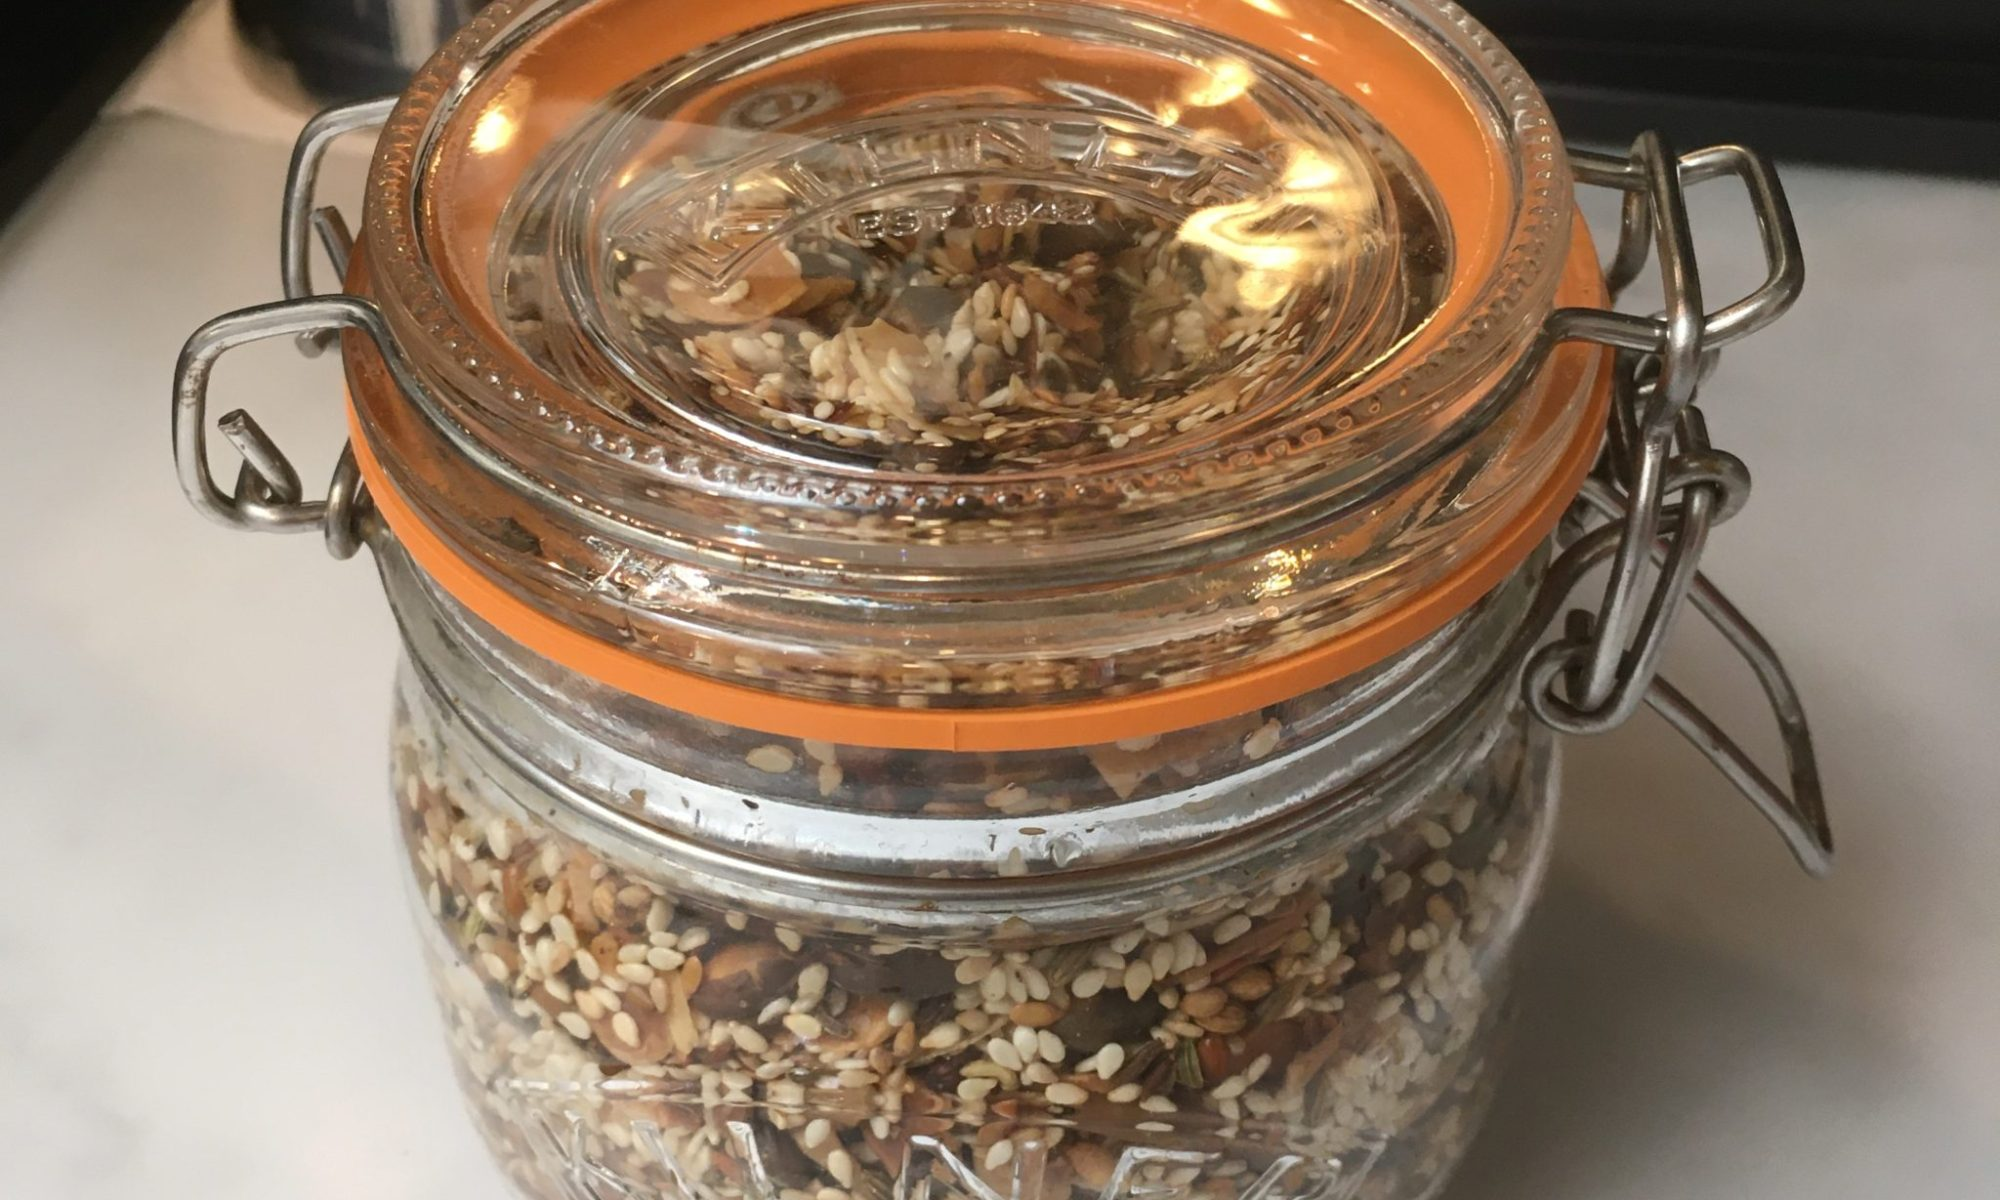 A jar of home made dukkah